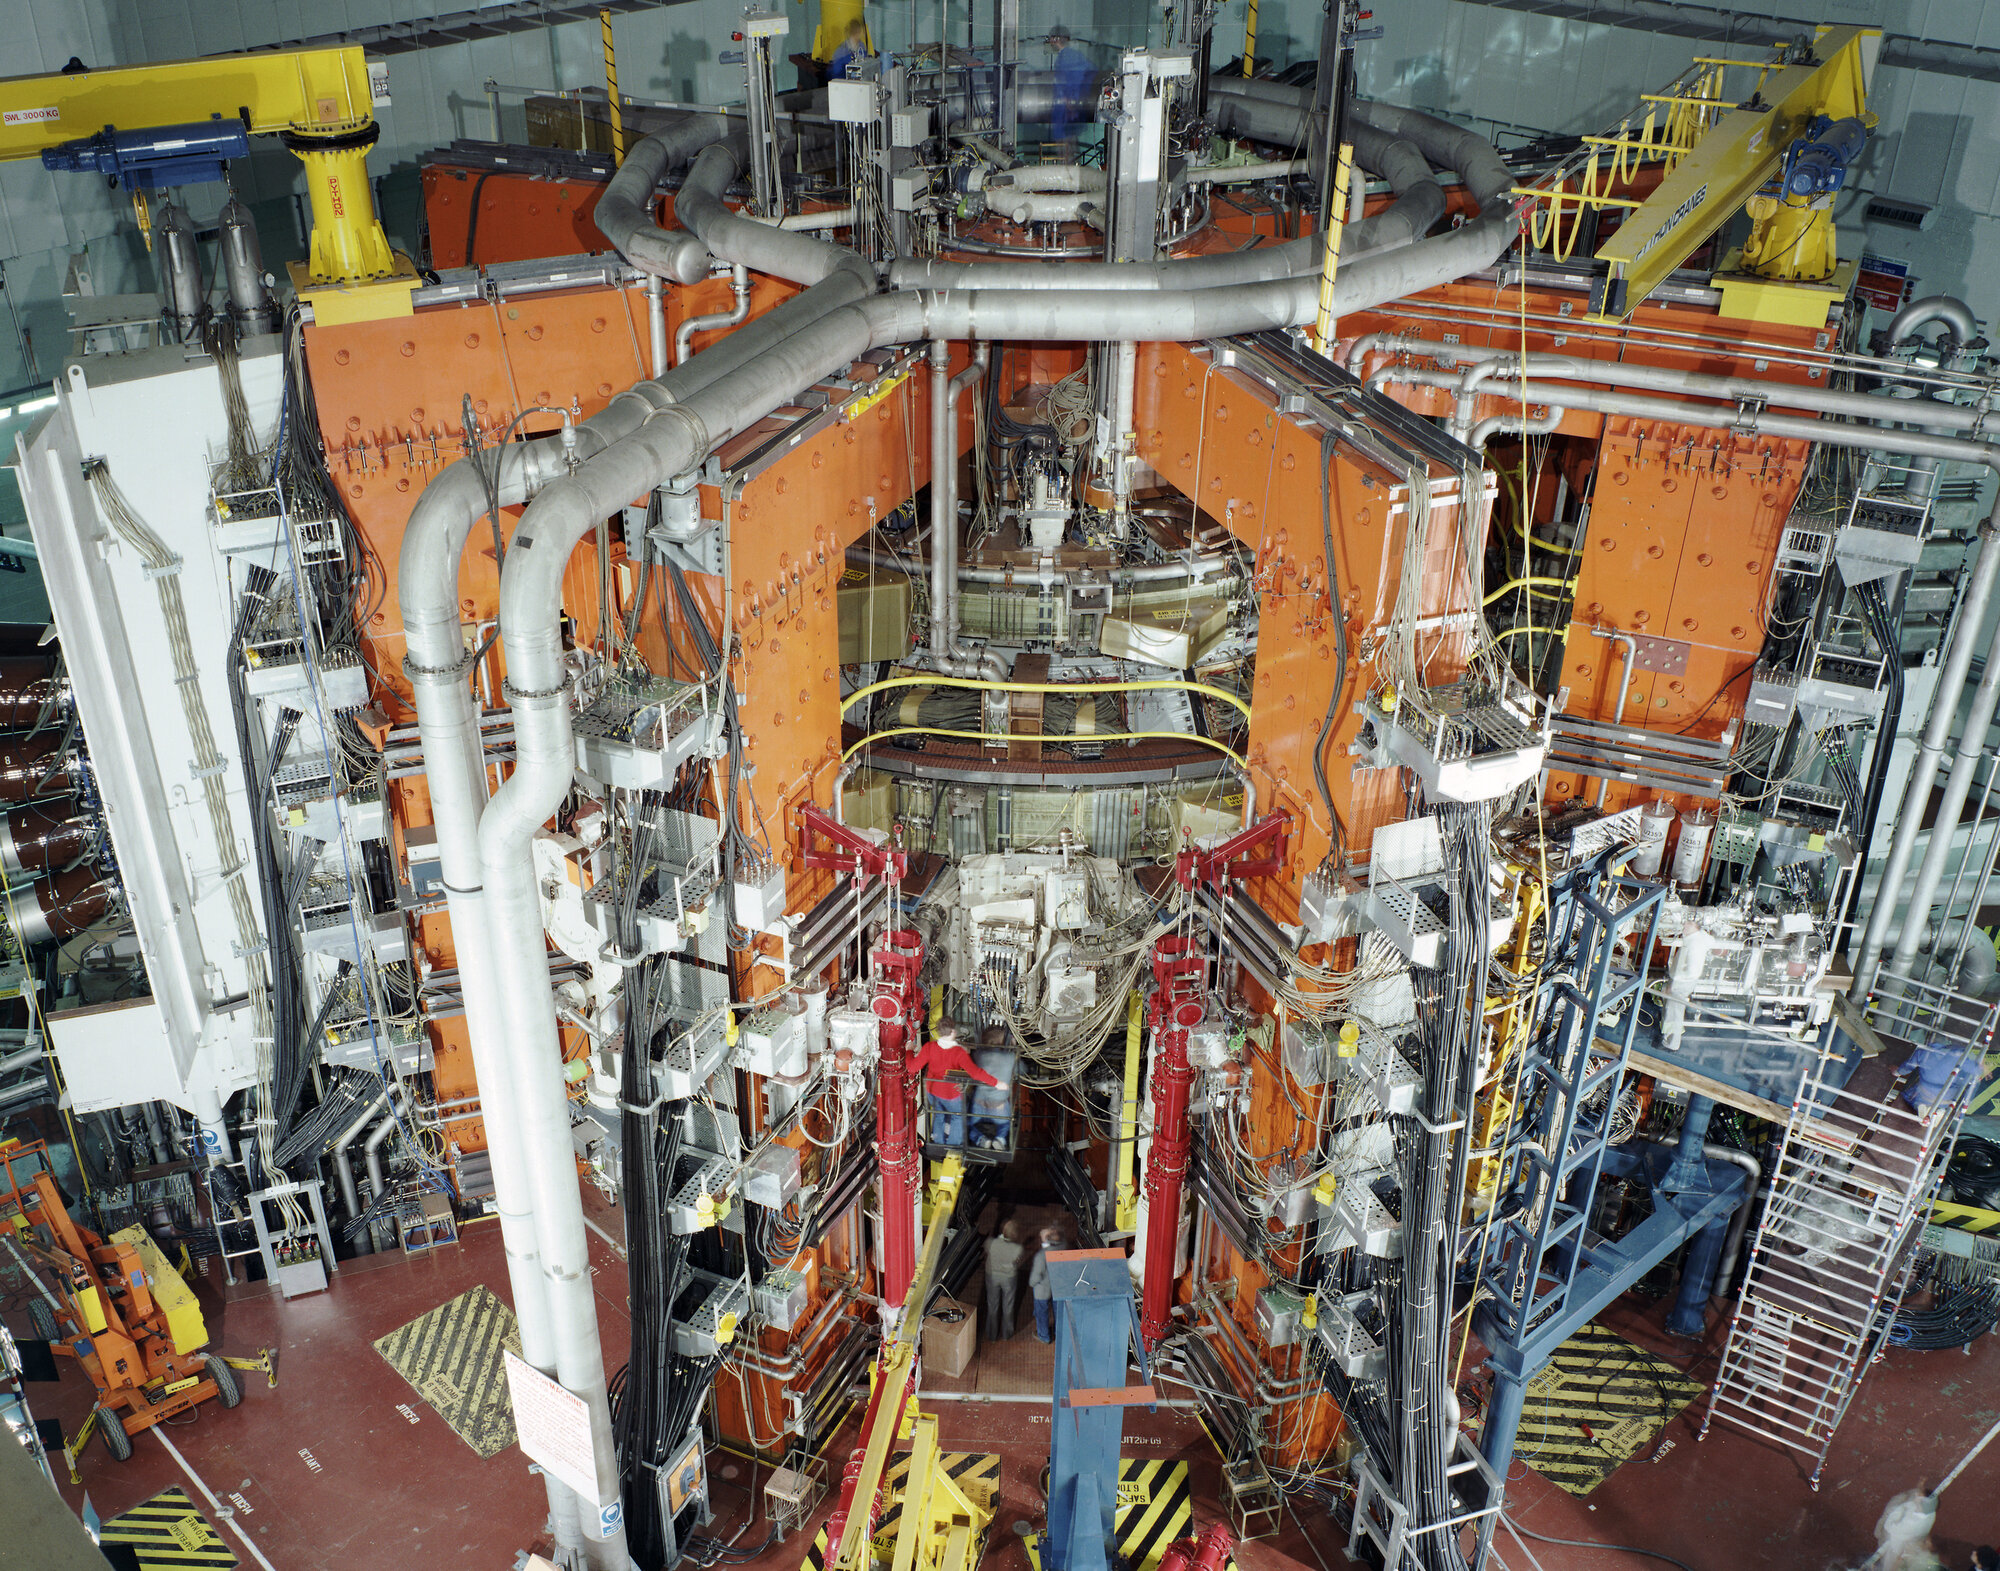 The_JET_magnetic_fusion_experiment_in_1991.jpg